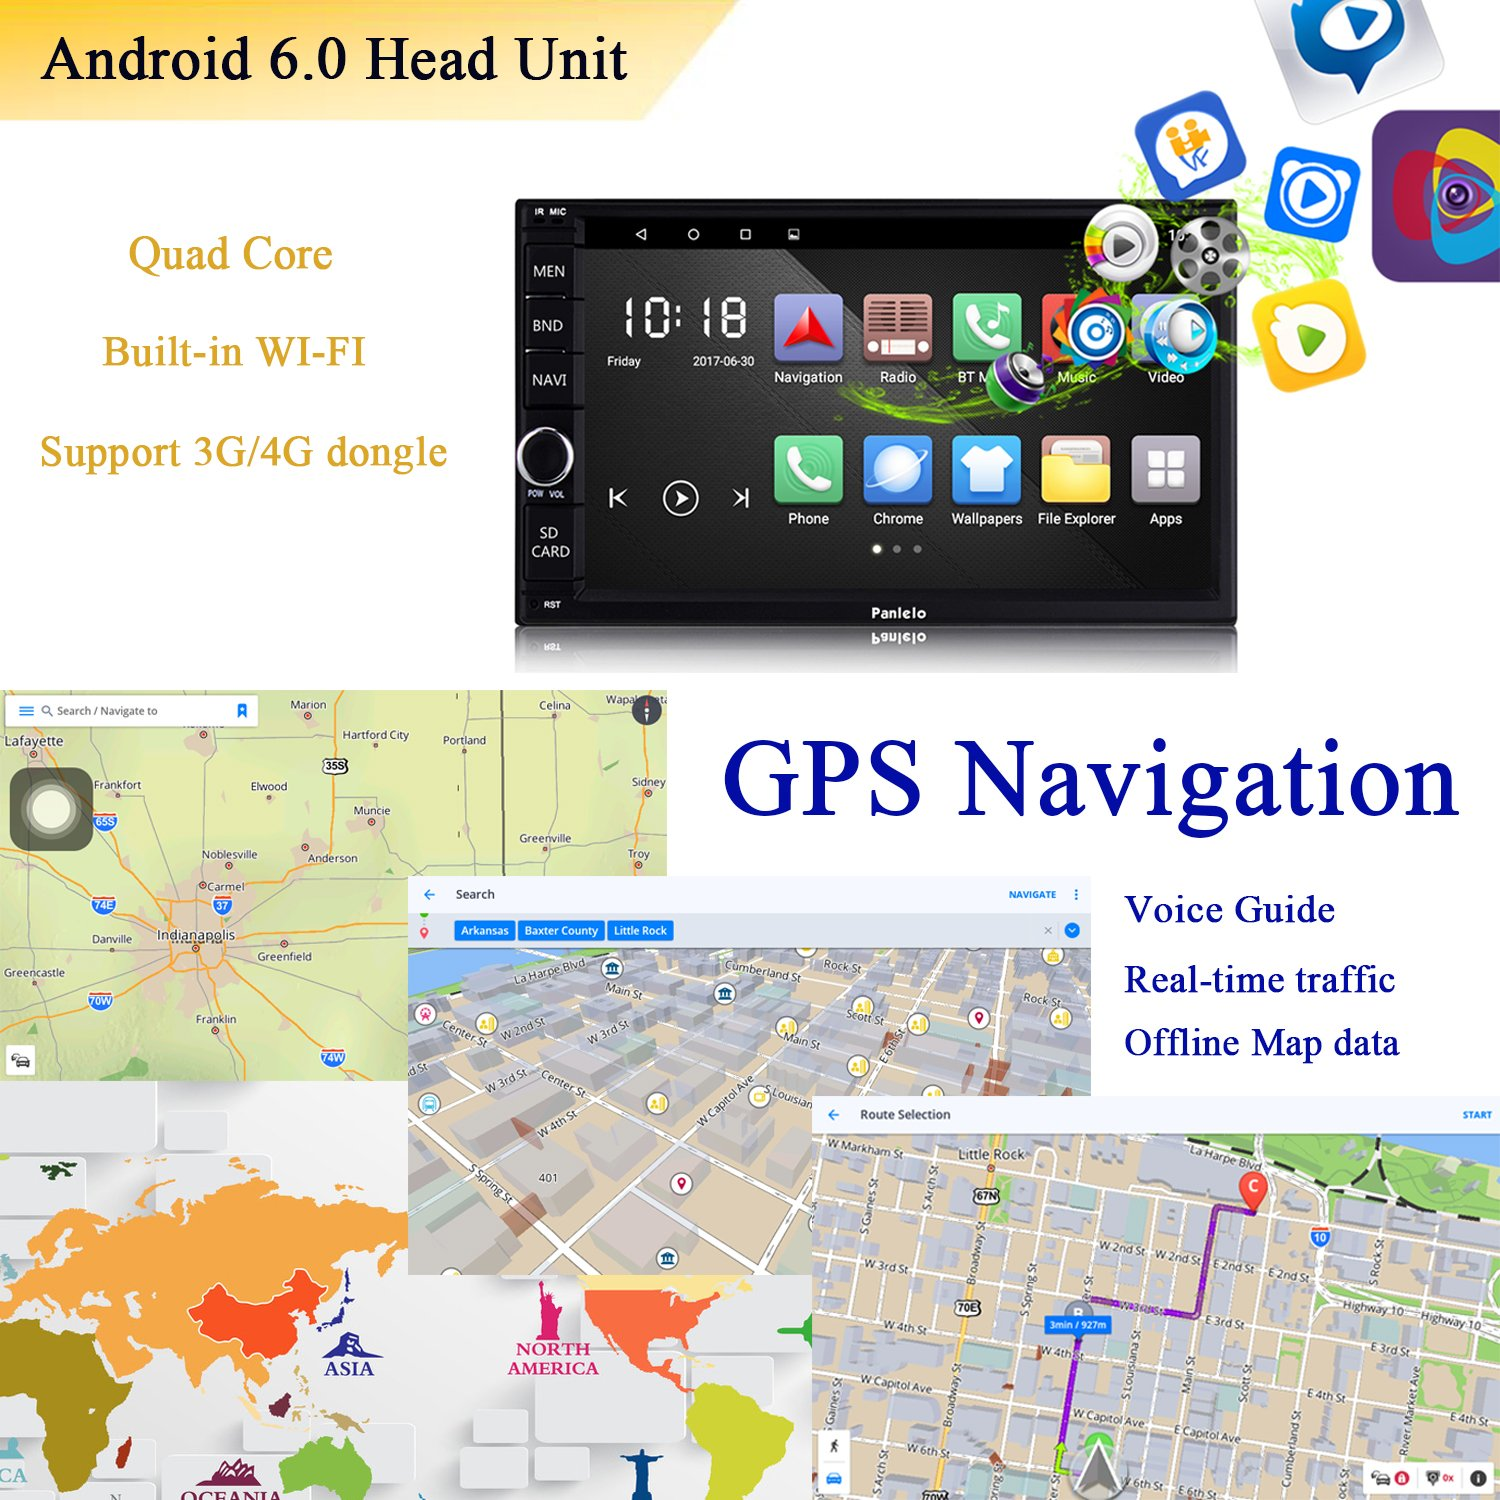 Panlelo PA012s Android 6.0 Car Stereo Double Din Car GPS Navigation 7 inch Car Radio Head Units Touch Screen BT WIFI Mirror Link SWC Quad Core 1GB RAM 16GB ROM AM/FM/RDS by Panlelo (Image #5)